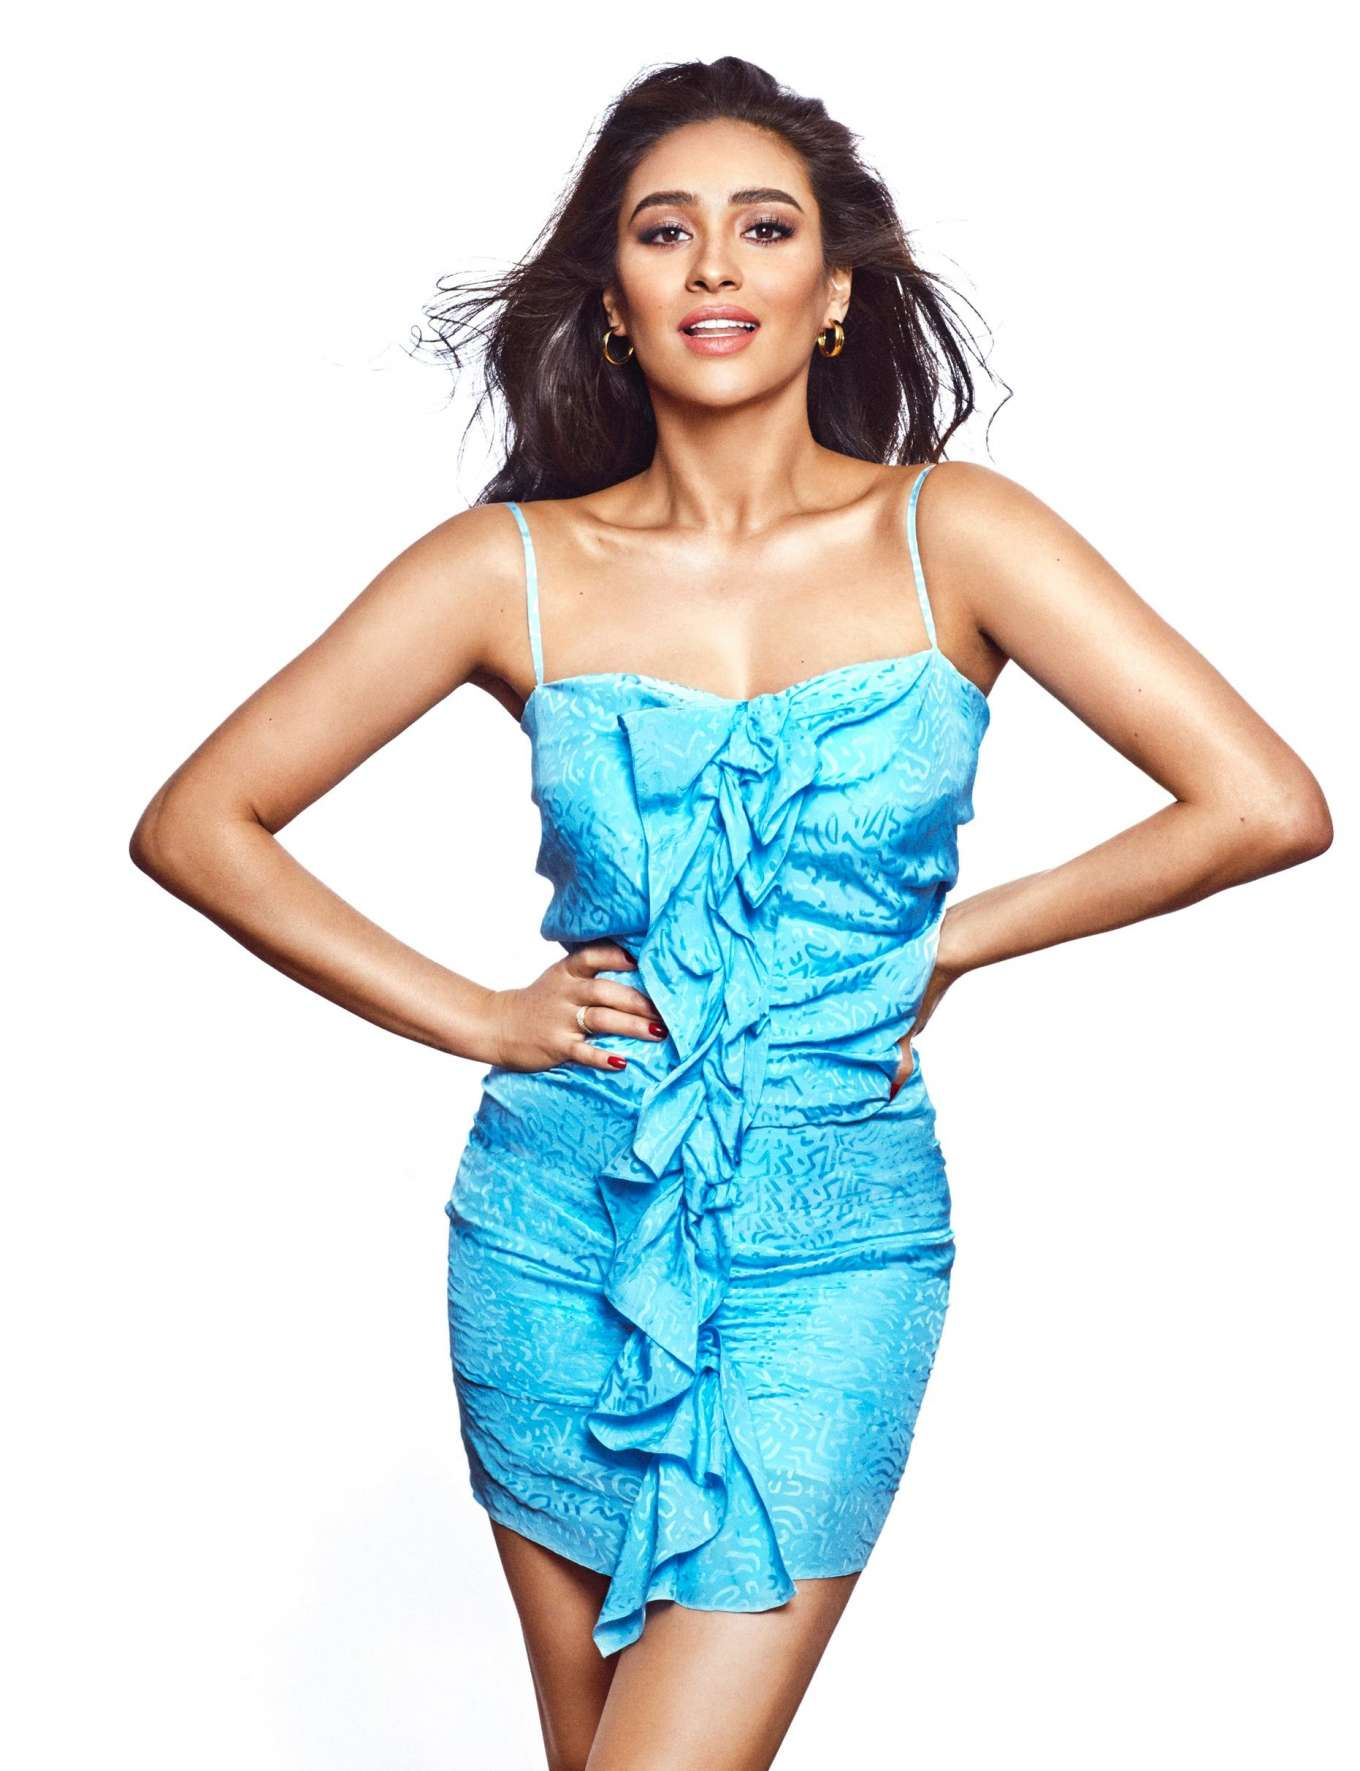 Shay Mitchell - Cosmopolitan Spain - March 2020